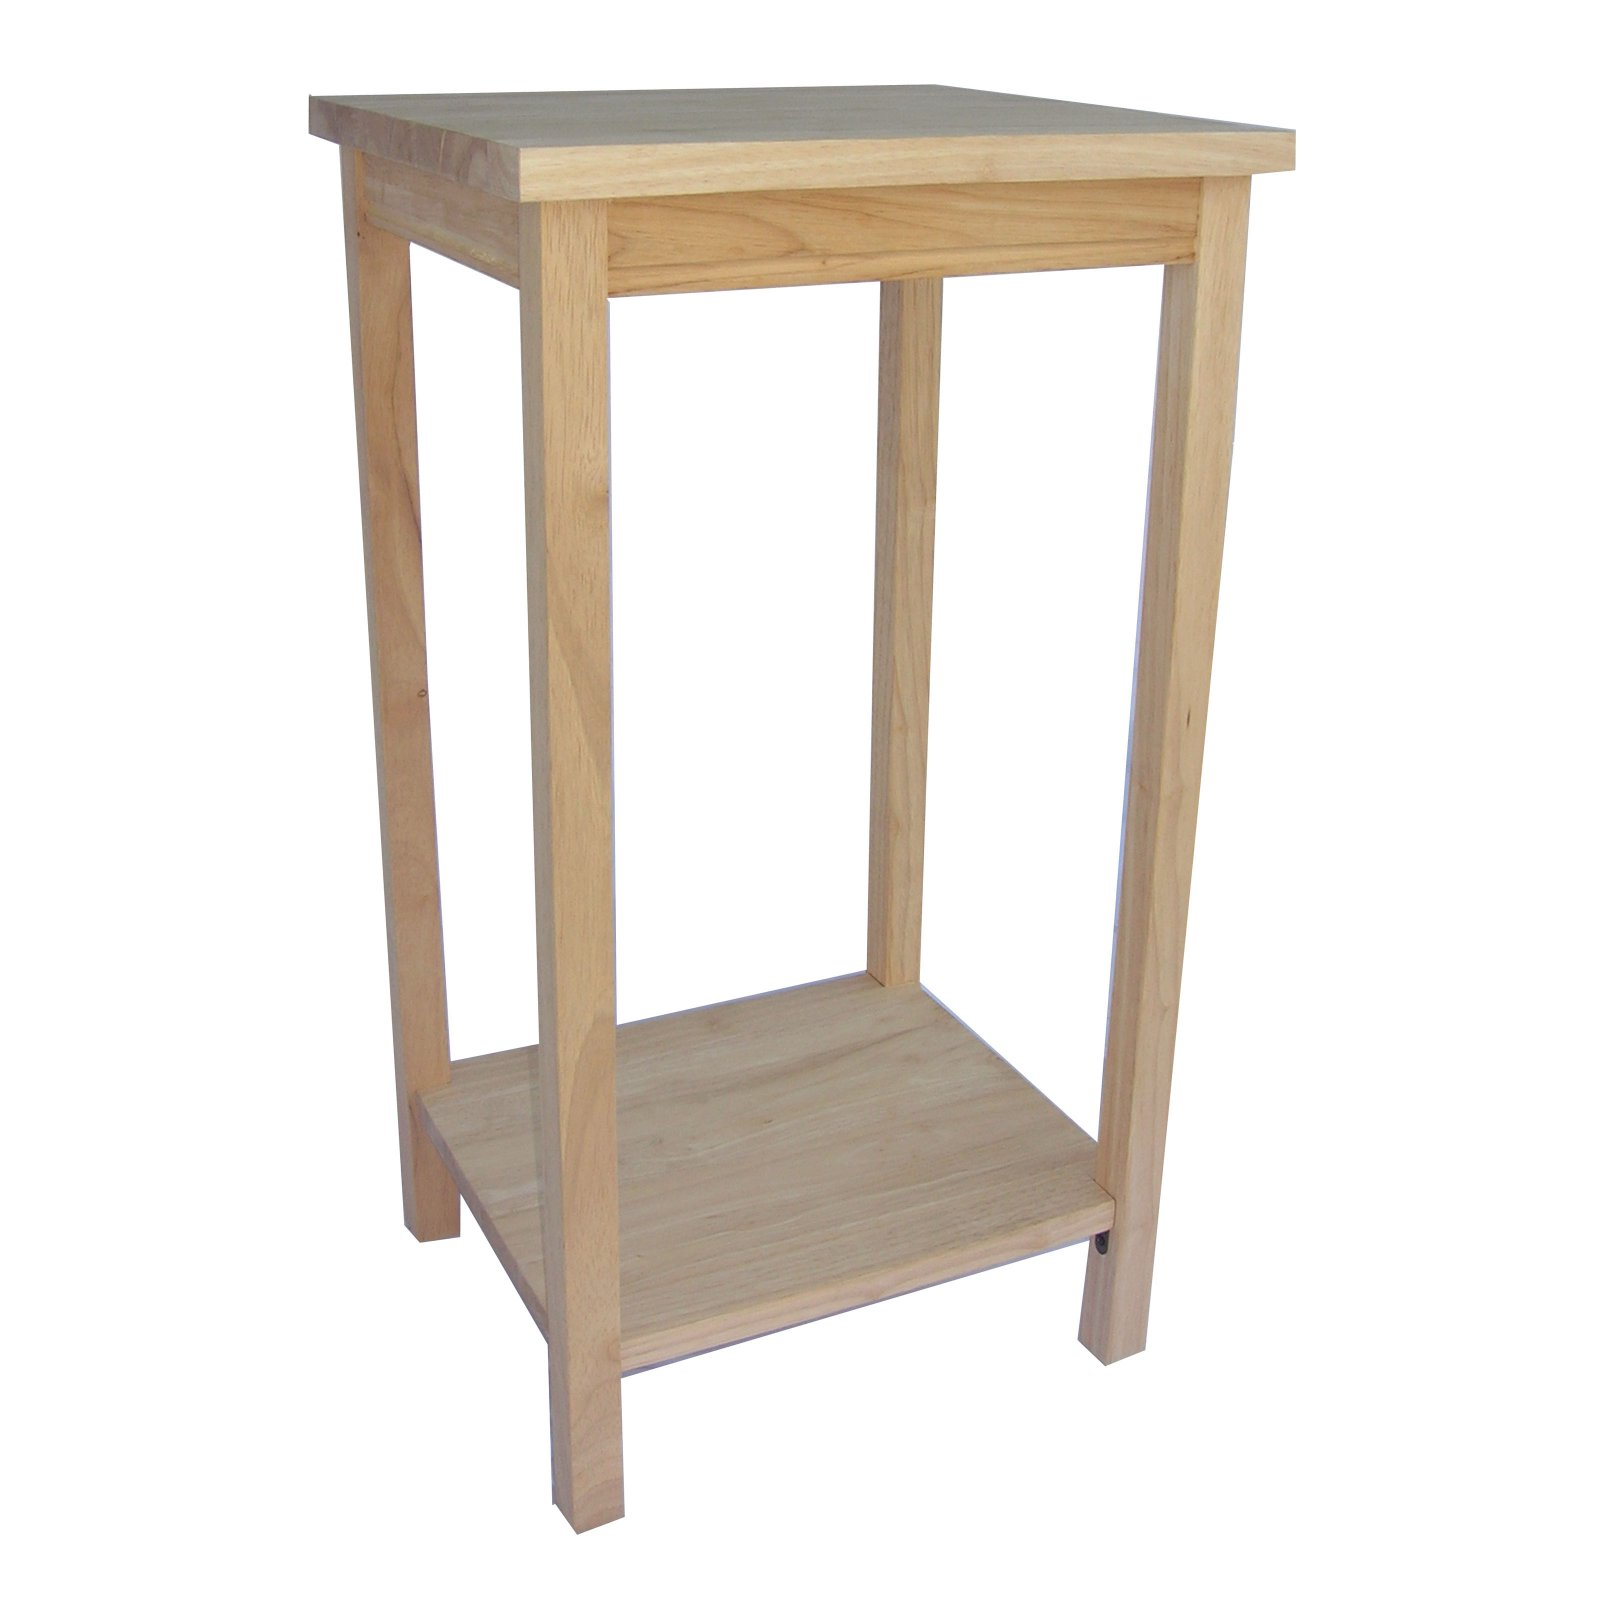 International Concepts Ot-42 Portman Accent Table, Ready To Finish